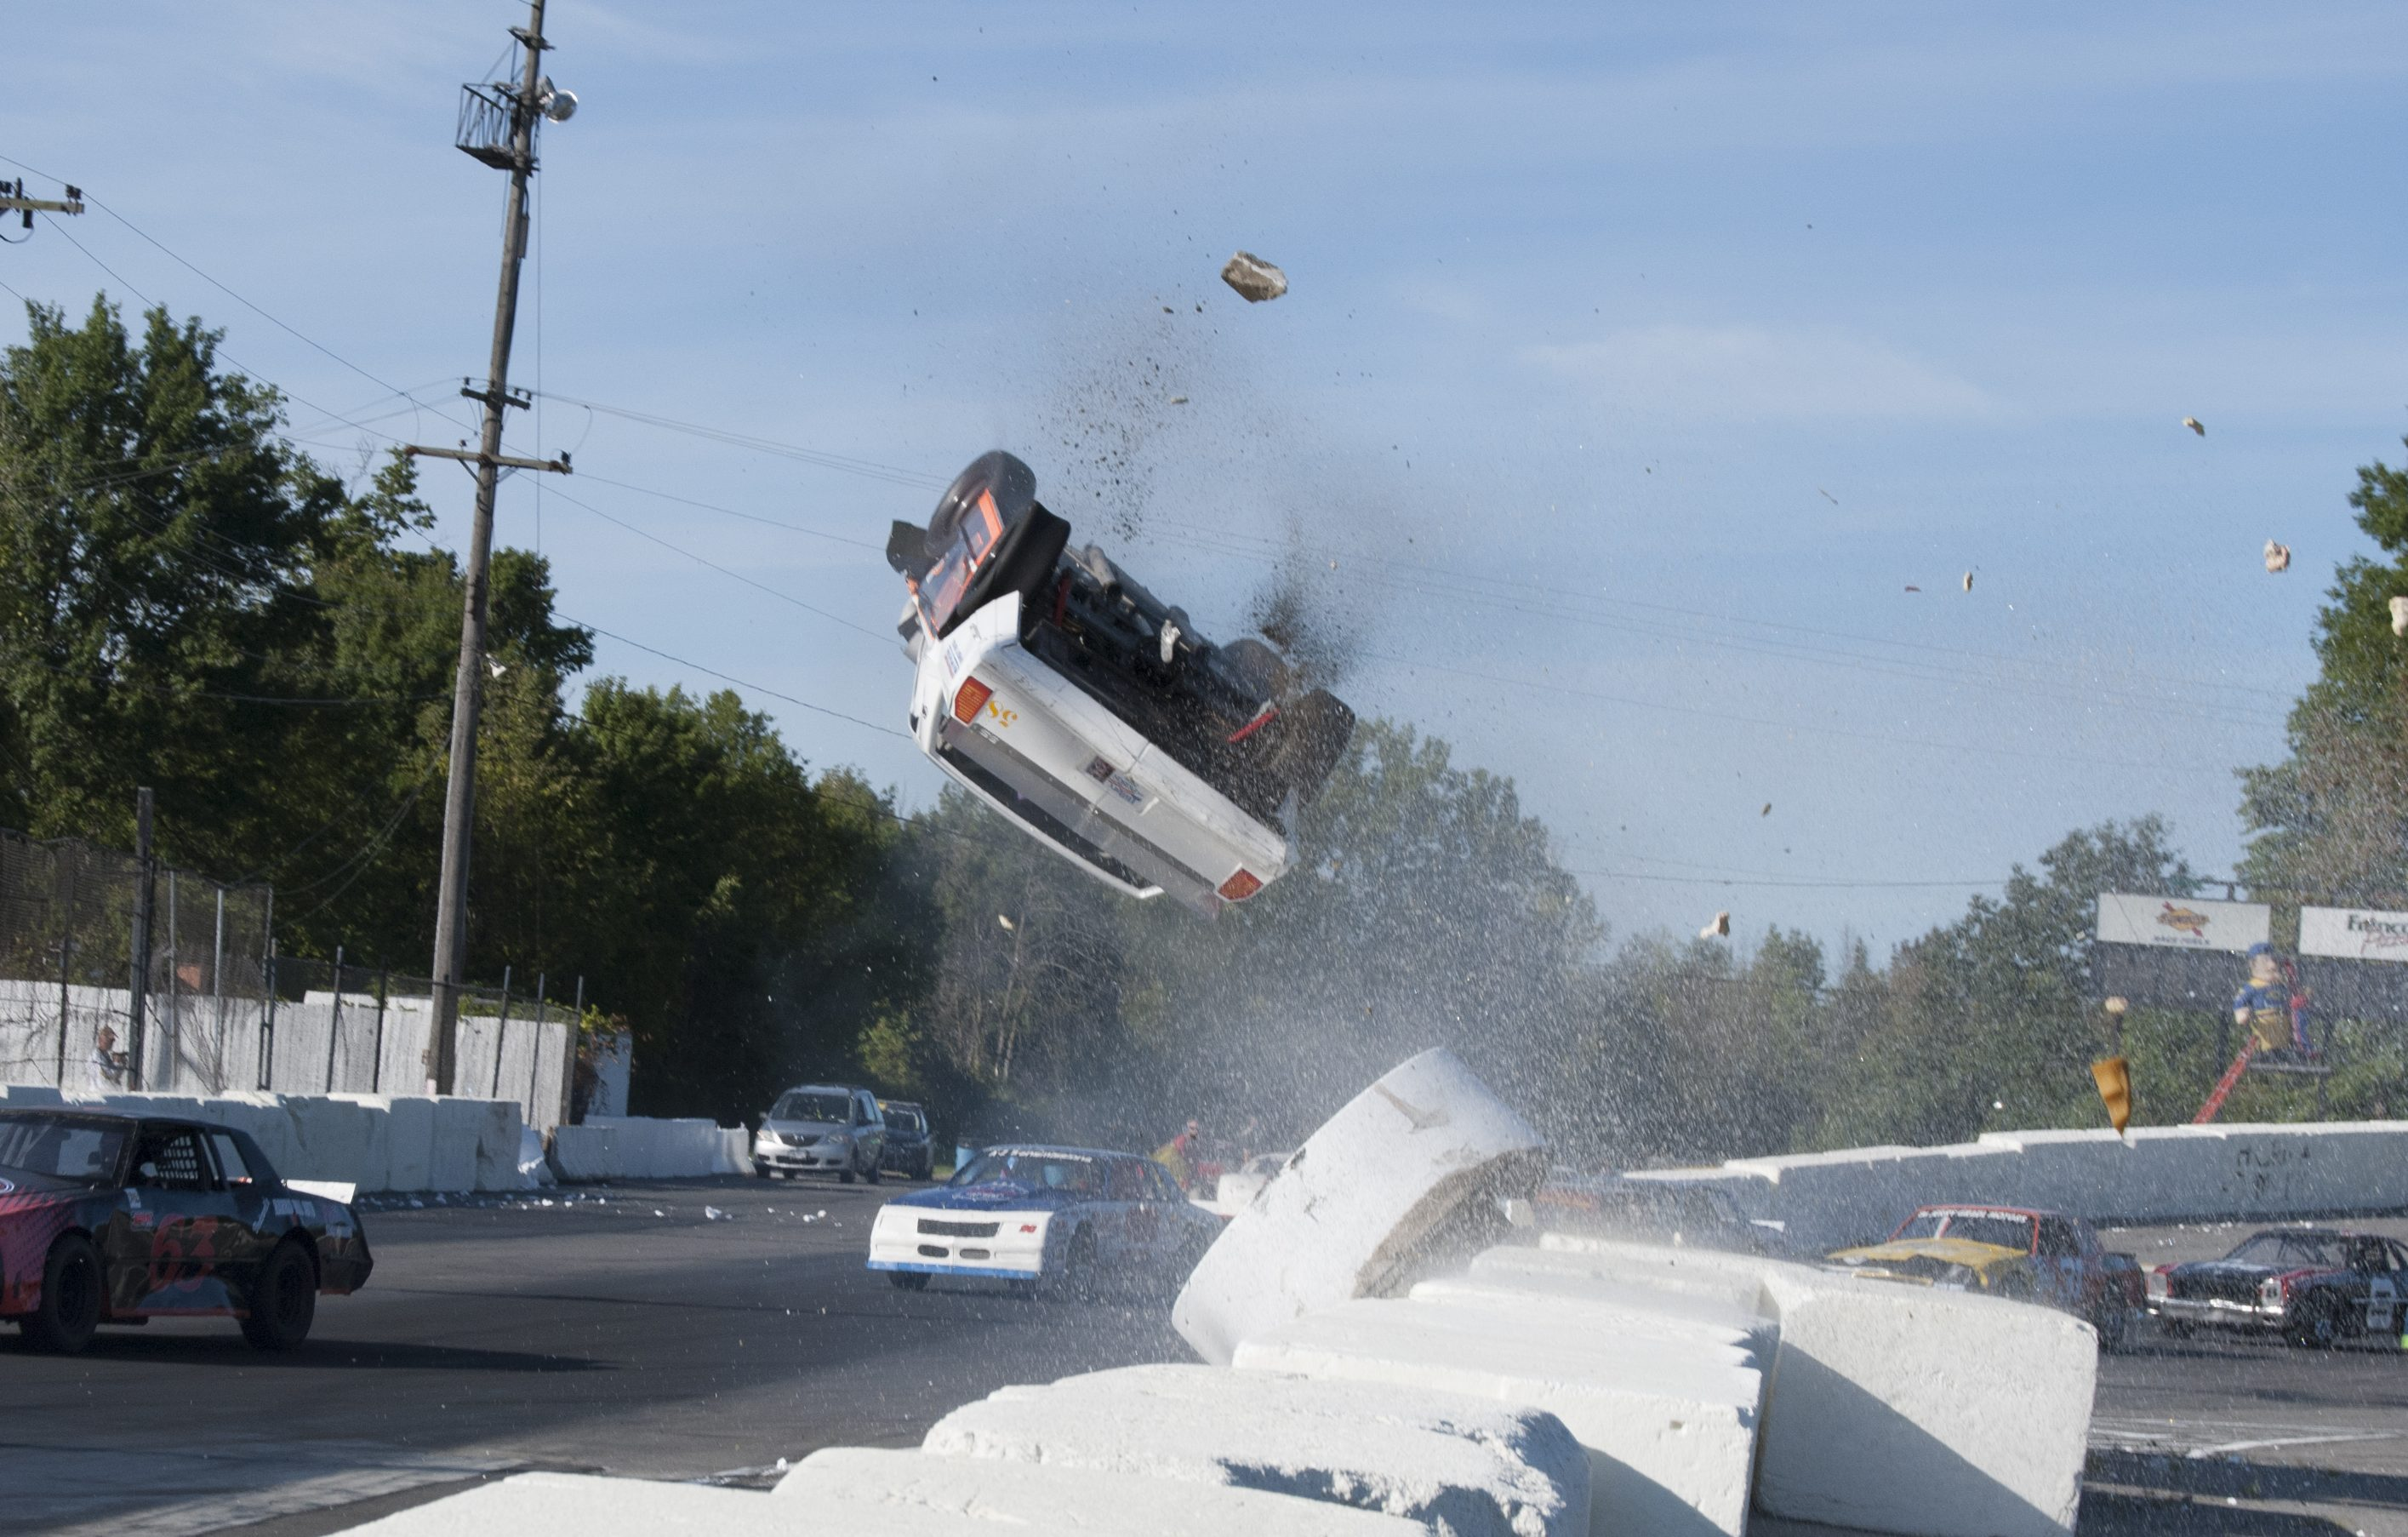 Jim Bryant's car goes up and over at Lancaster. (Photo by Joe Grabianowski)